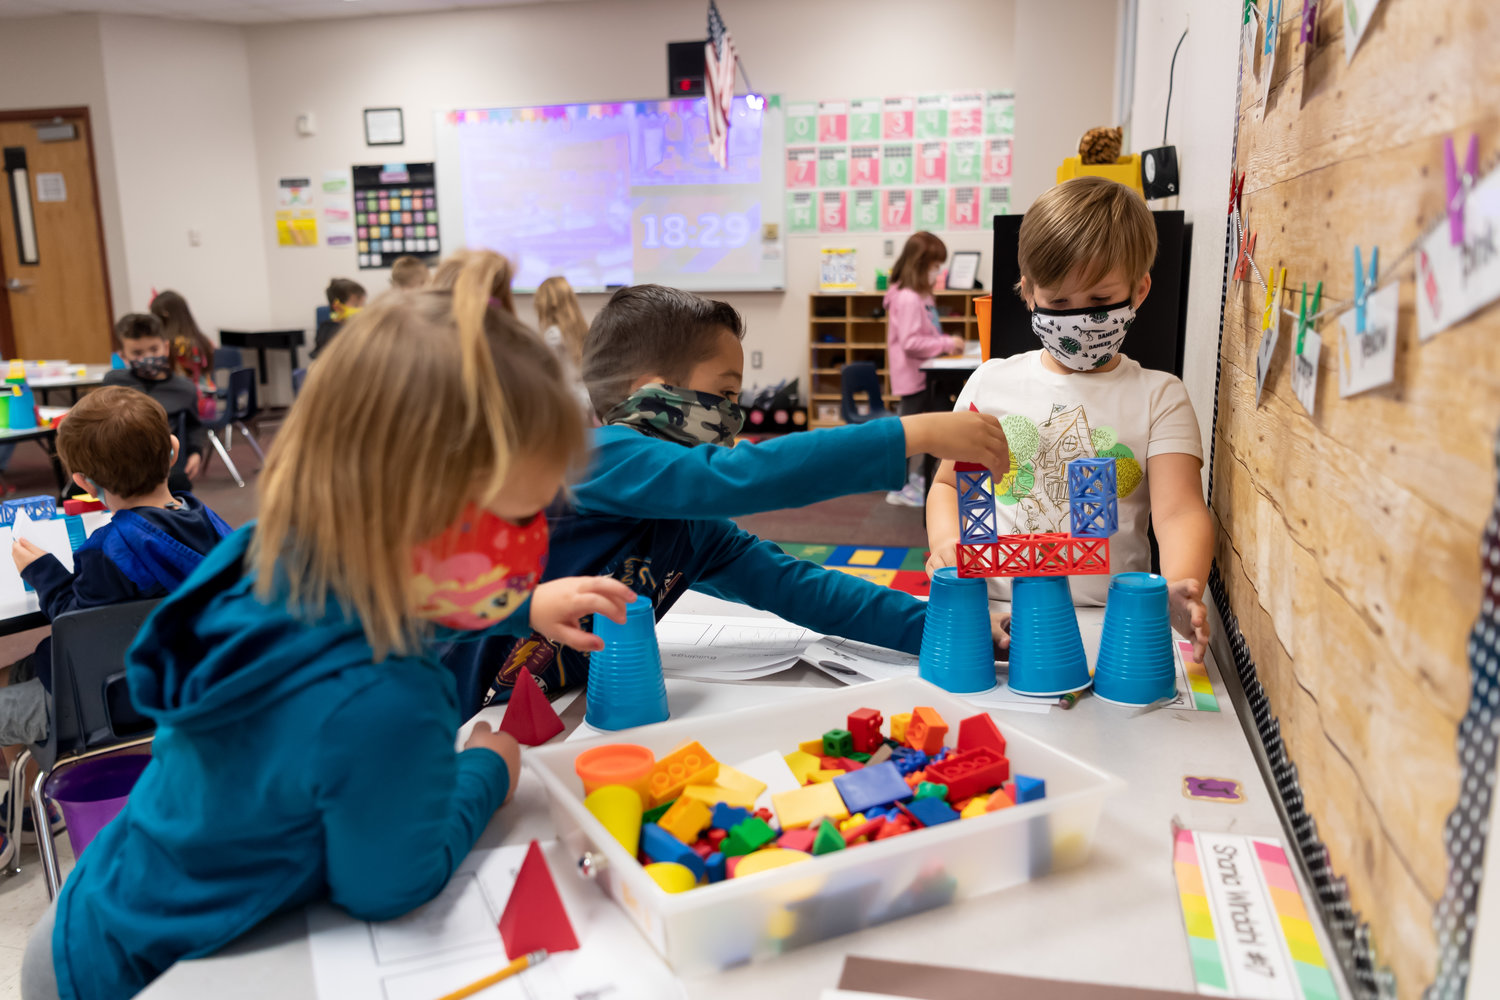 On Nov. 24, masked Canyon Ridge School K-8 students in Surprise participated in a STEM Collaboration Day to solve various problems using the engineering design process. On Monday, Gov. Doug Ducey rescinded a statewide requirement for people, including students, to wear masks. It will now be up to local school districts.